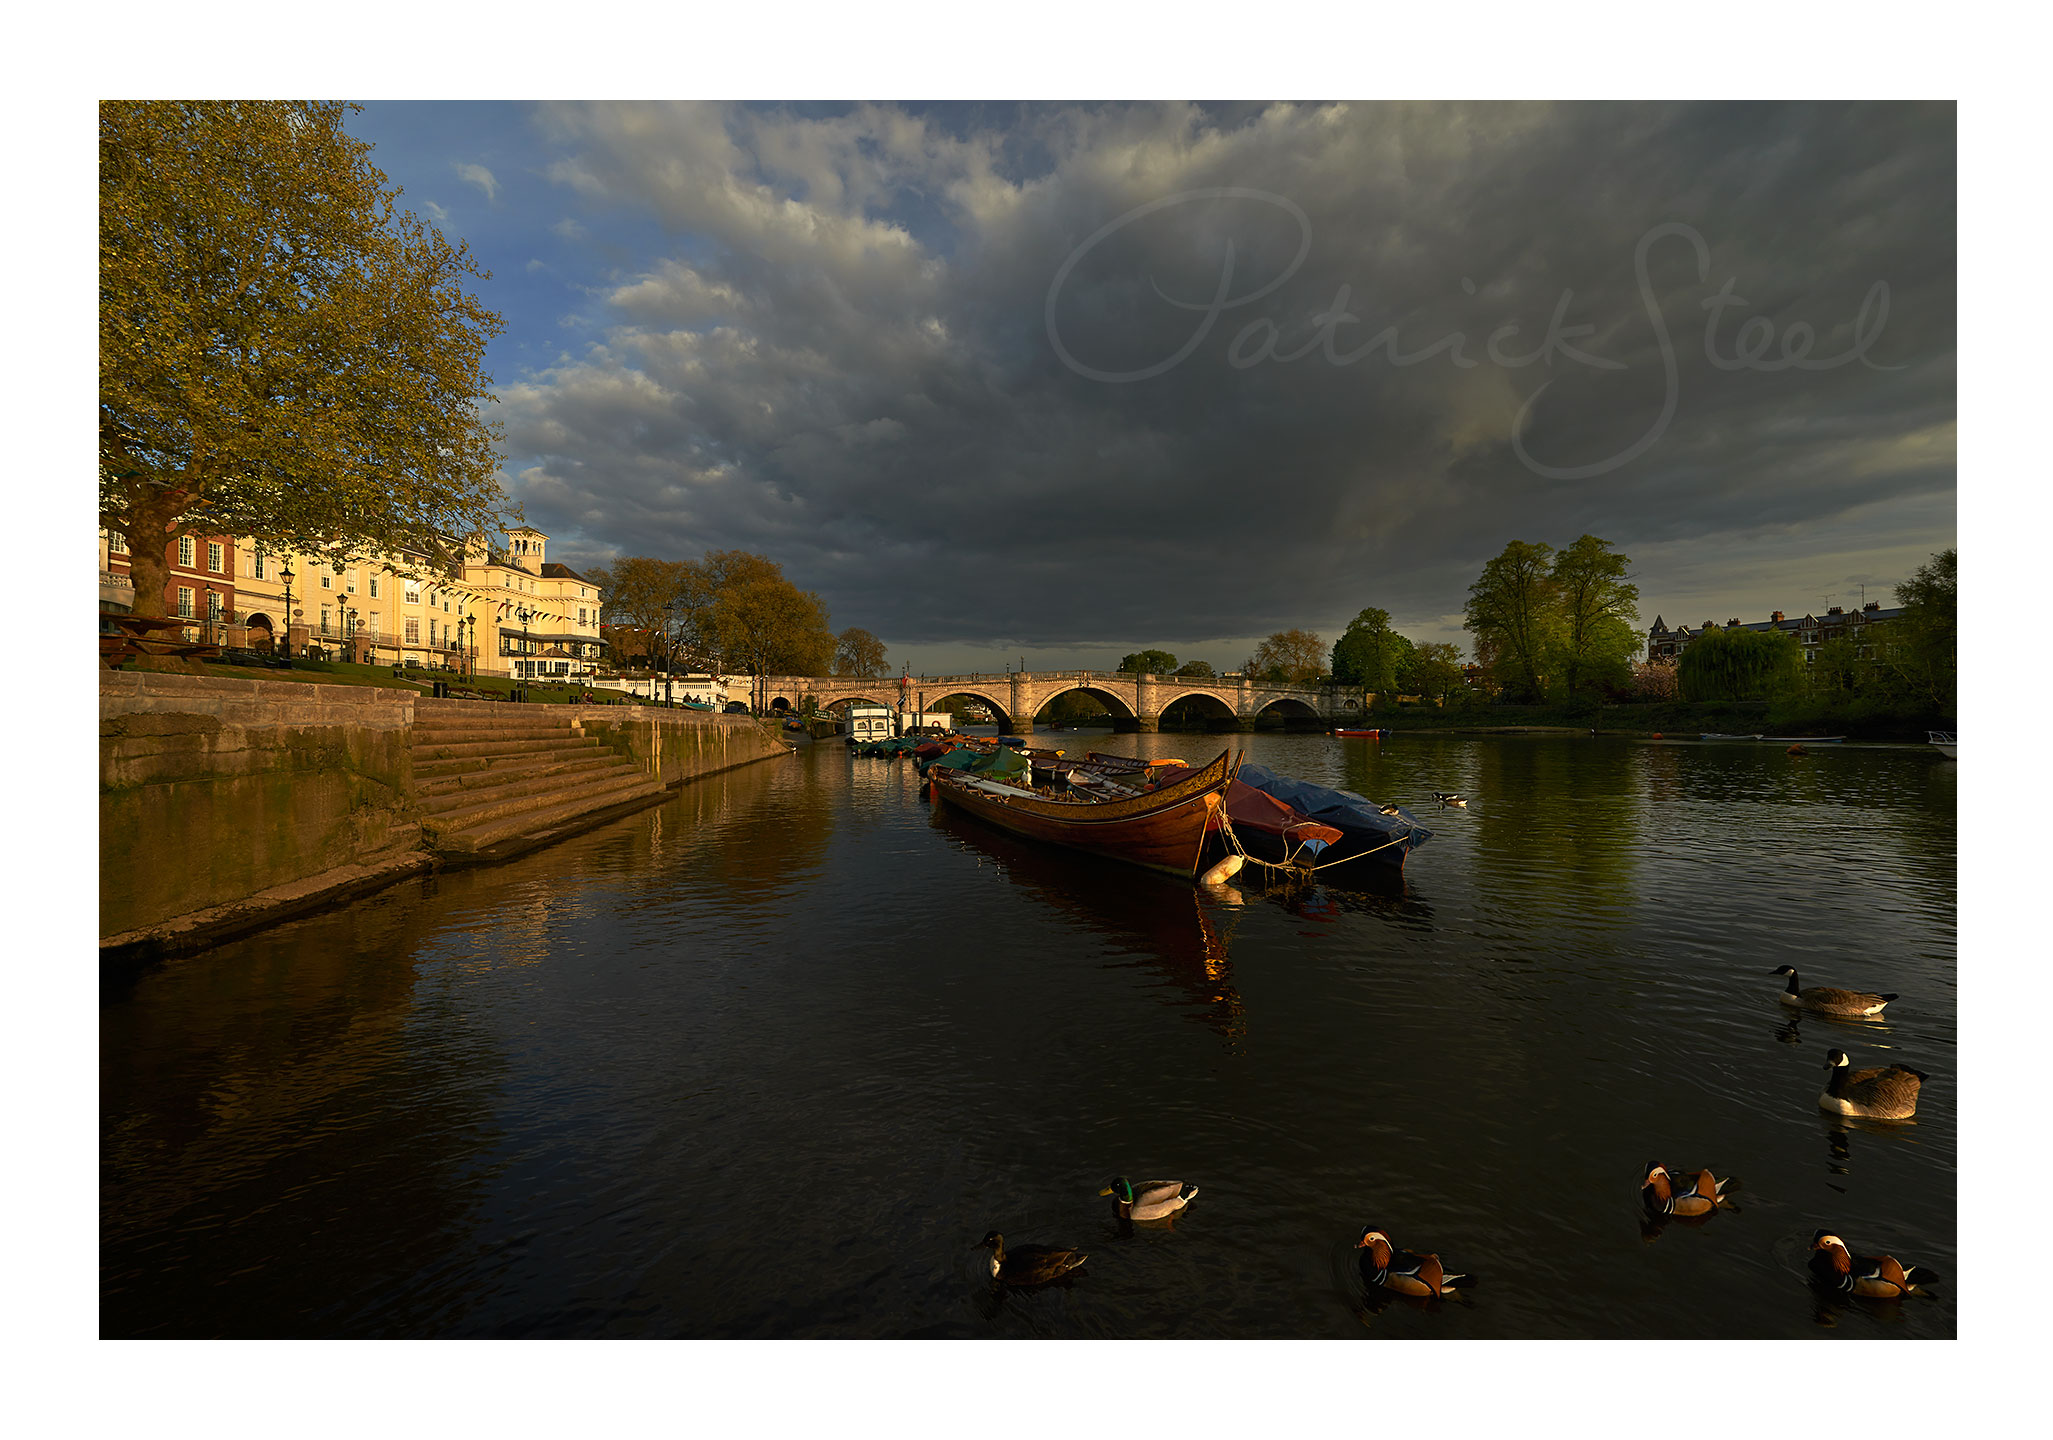 richmond bridge richmond upon thames photo landscape photograph